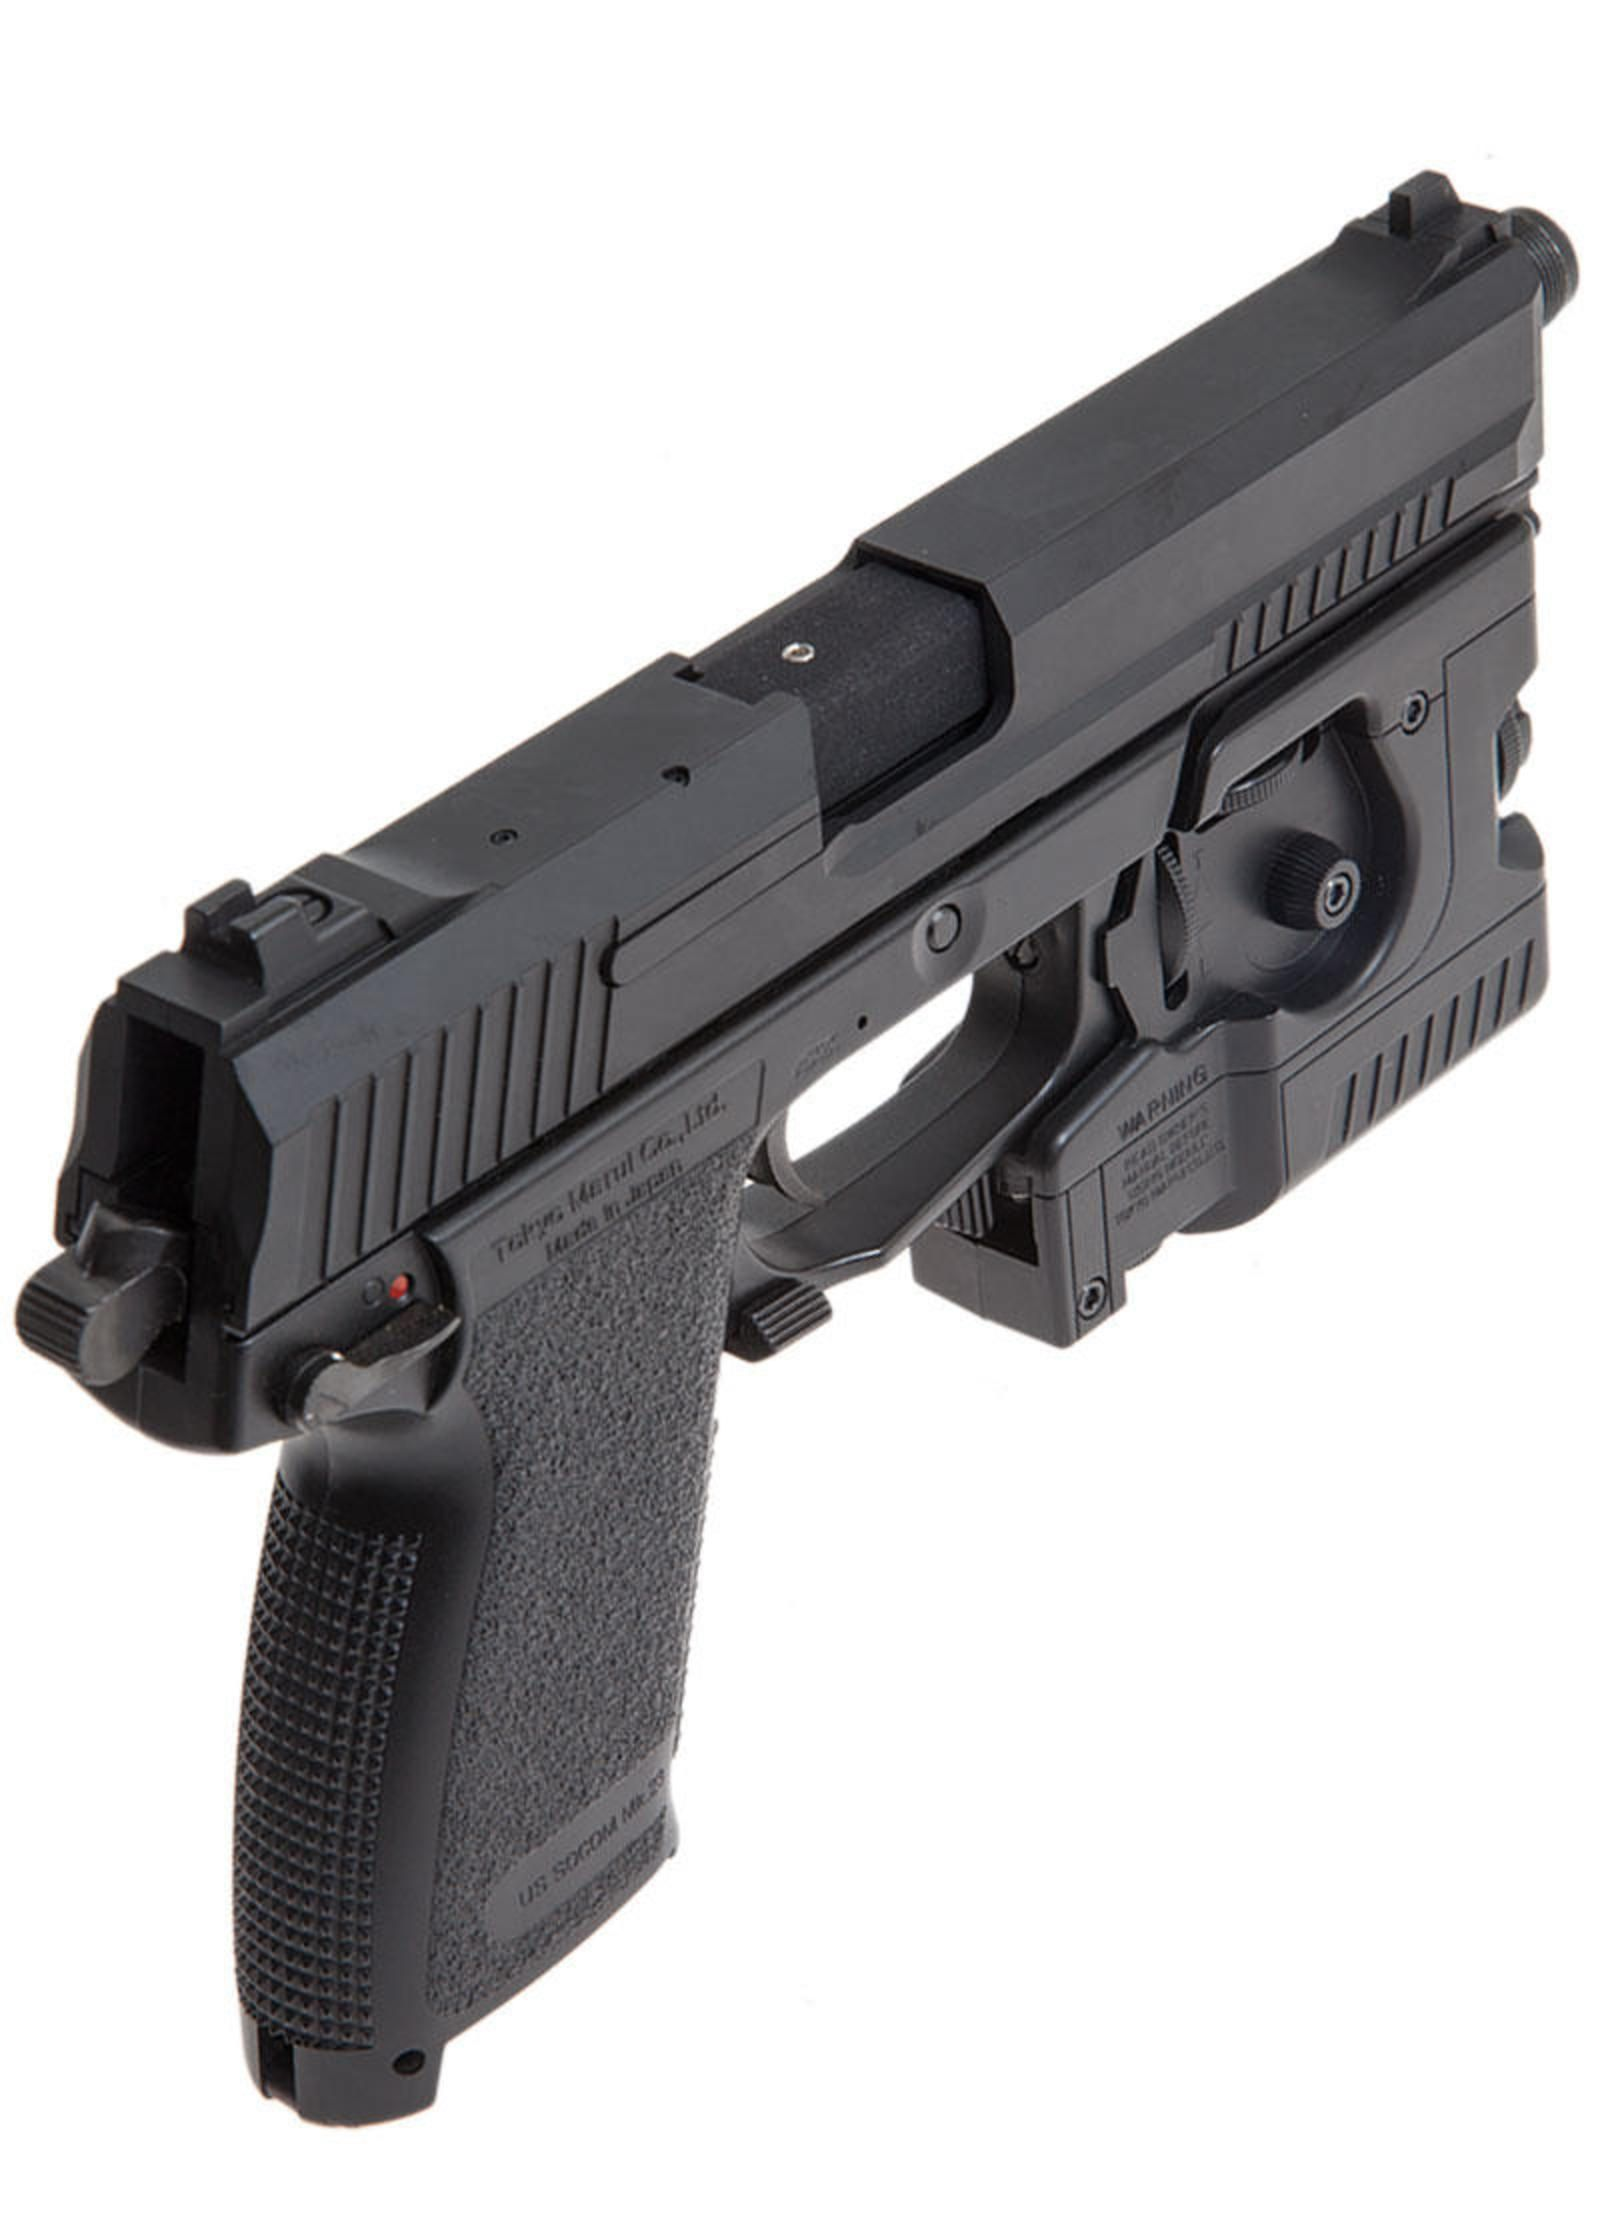 Mk23 SocomSave those thumbs & bucks w/ free shipping on this magloader  I purchased